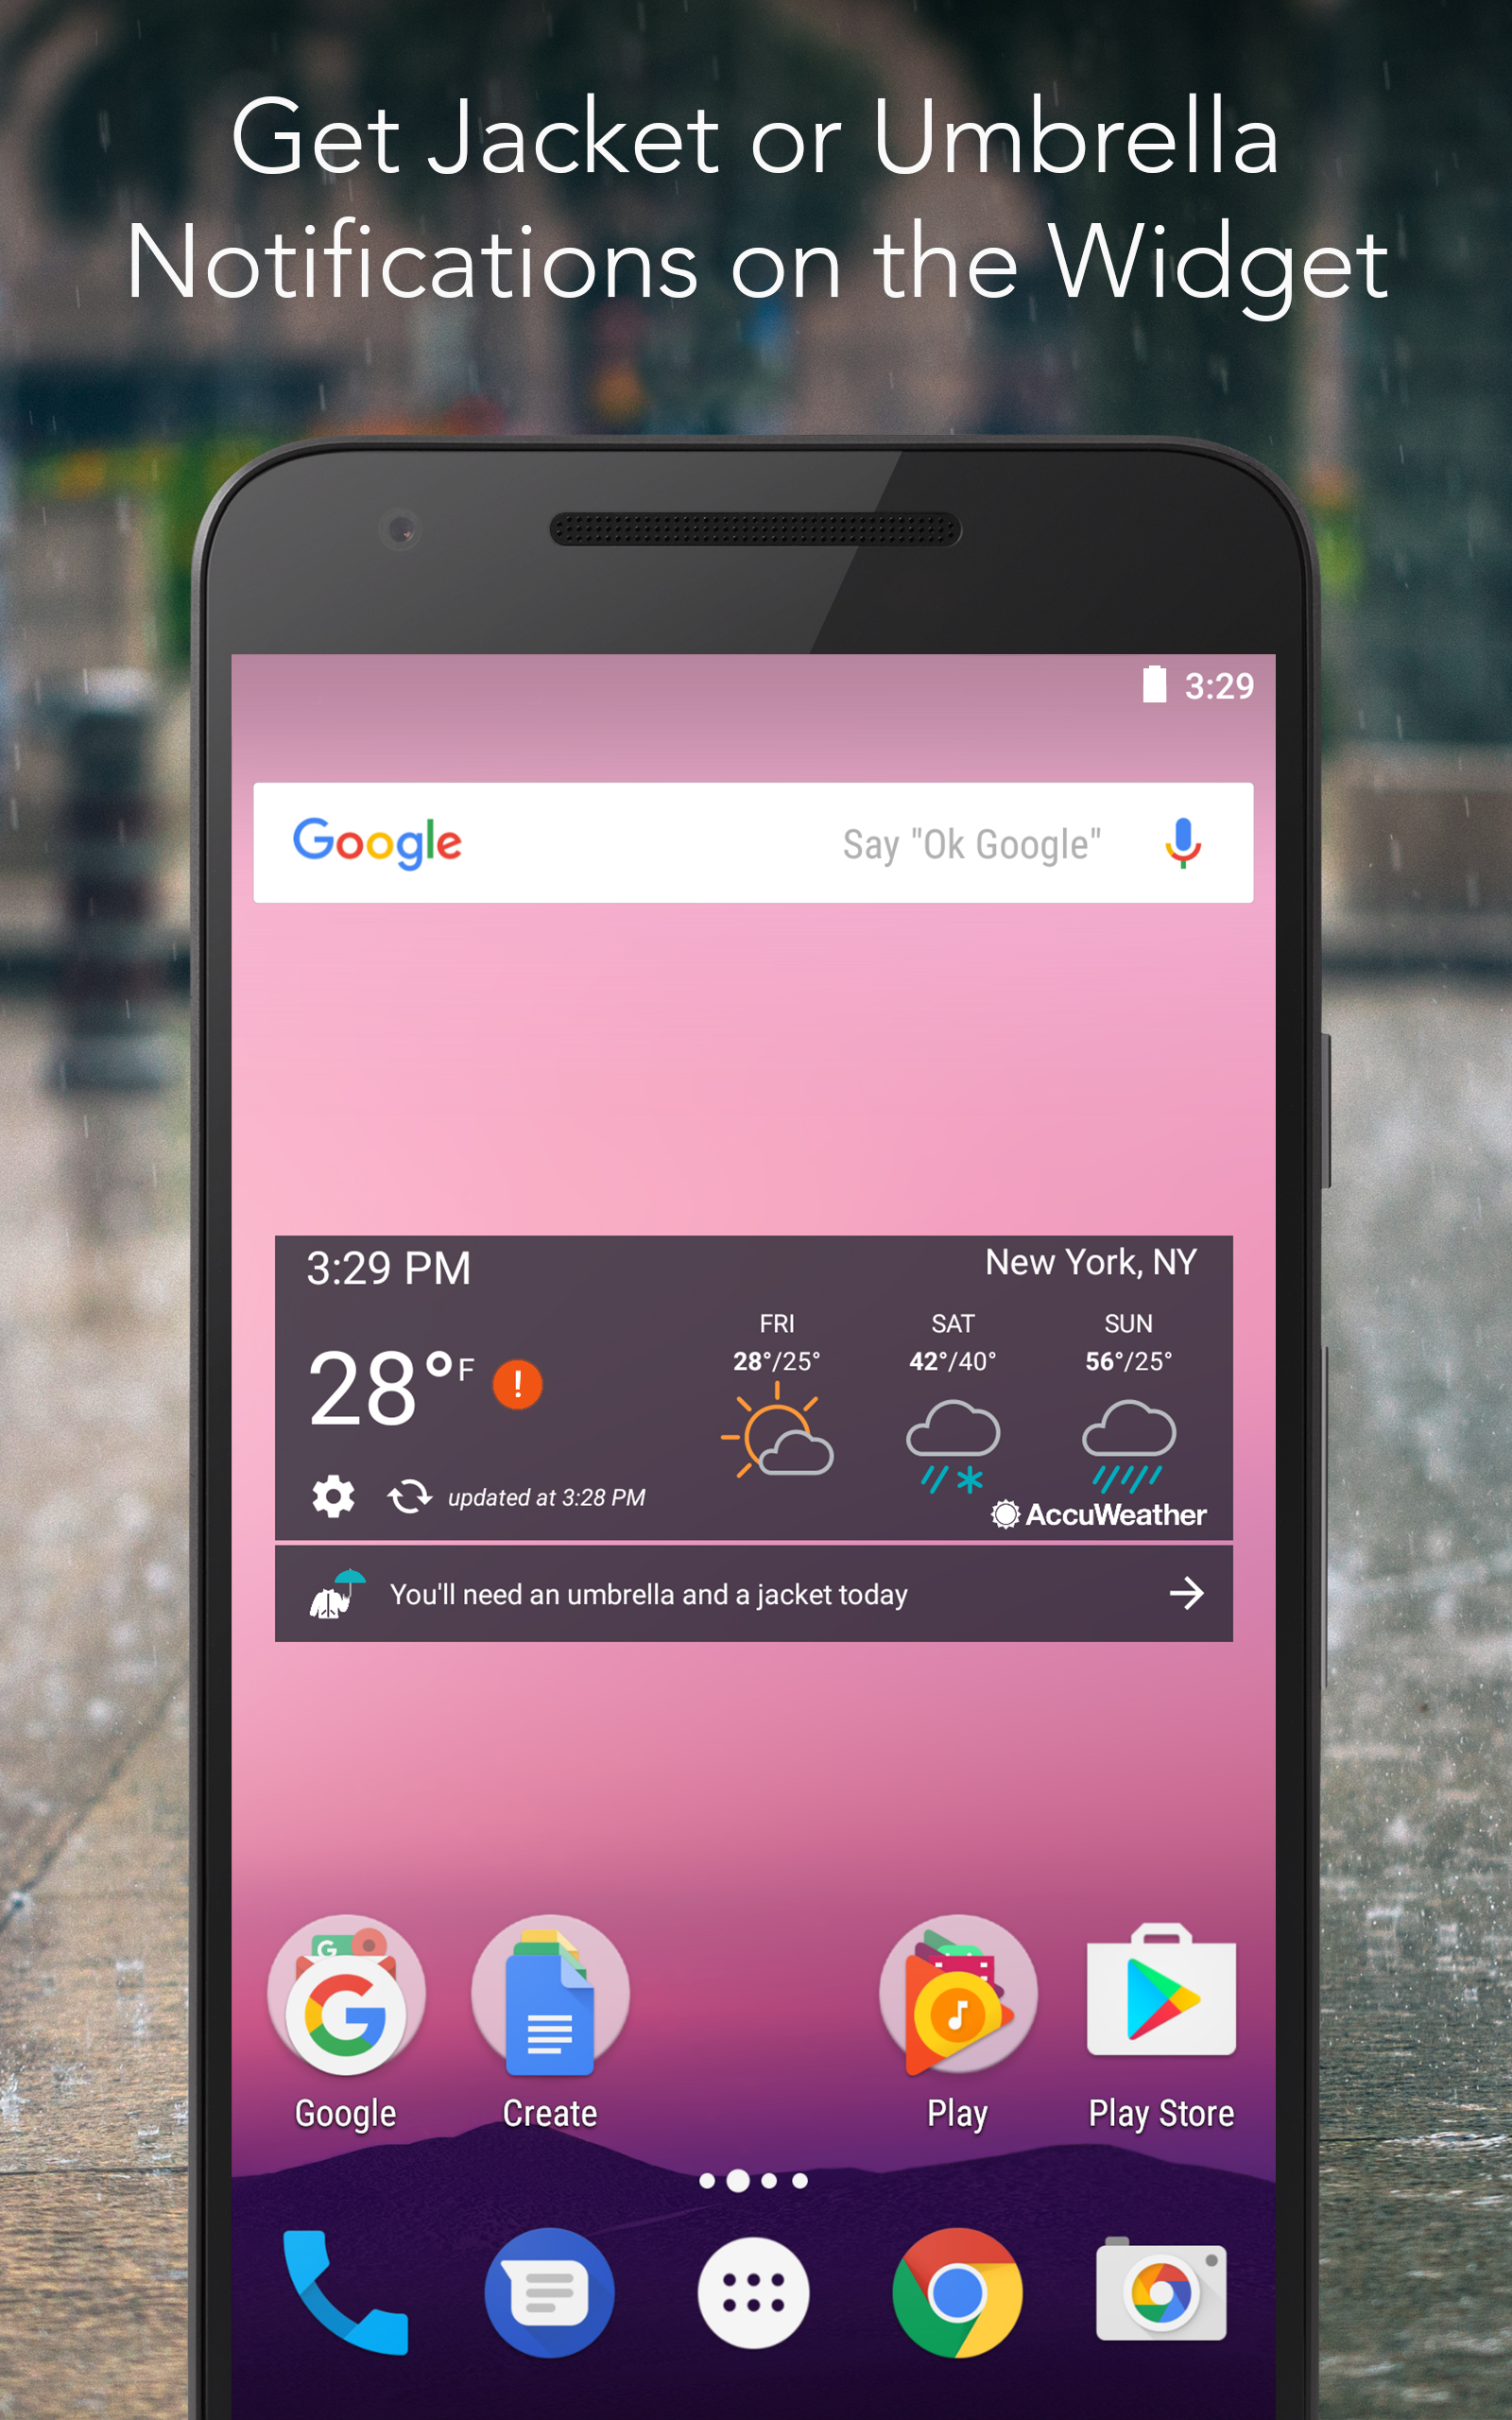 accuweather mobile